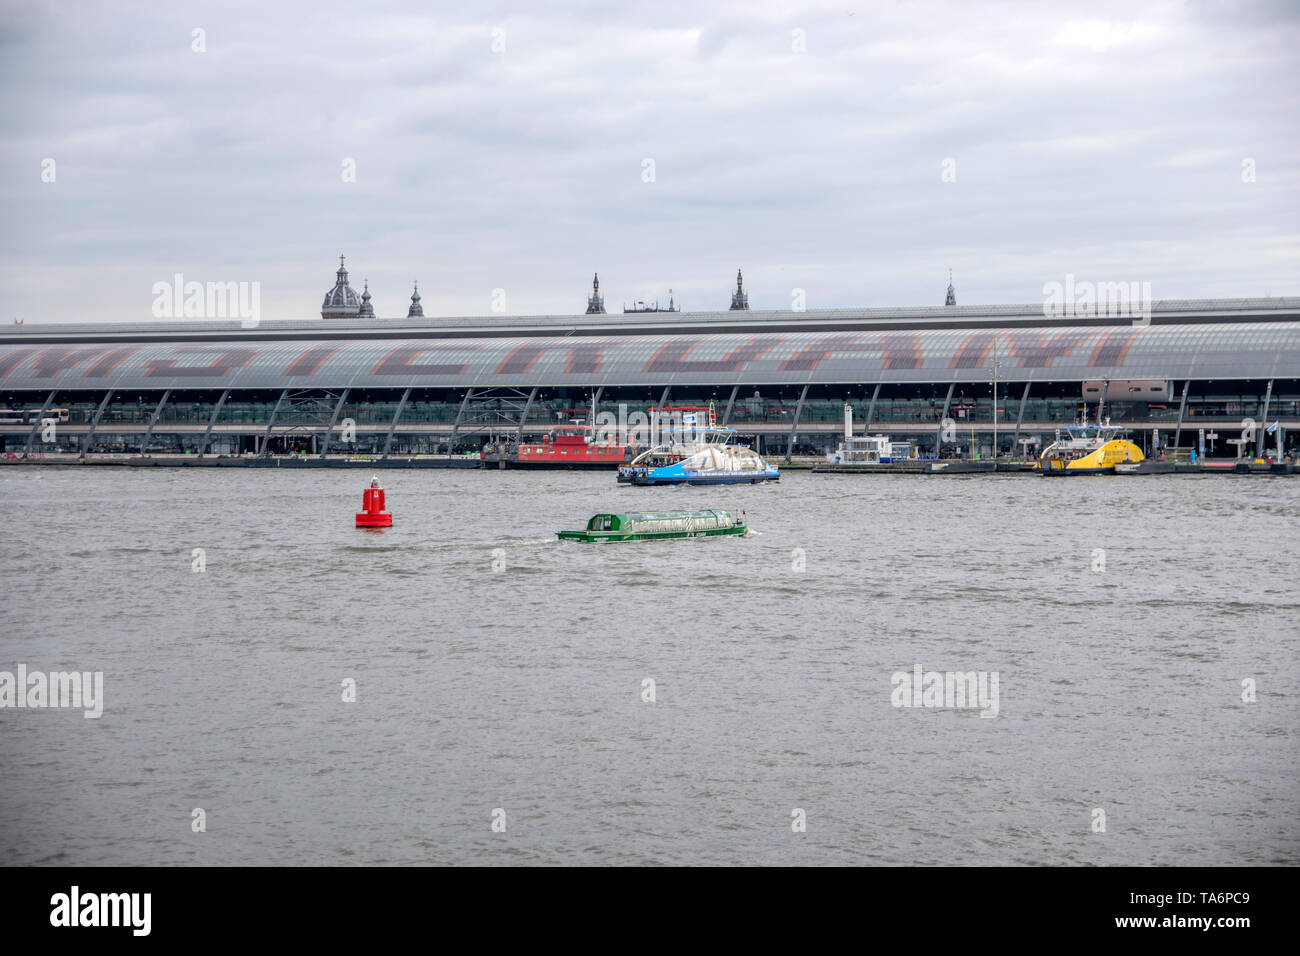 View On The IJ River At Amsterdam The Netherlands 2019 - Stock Image